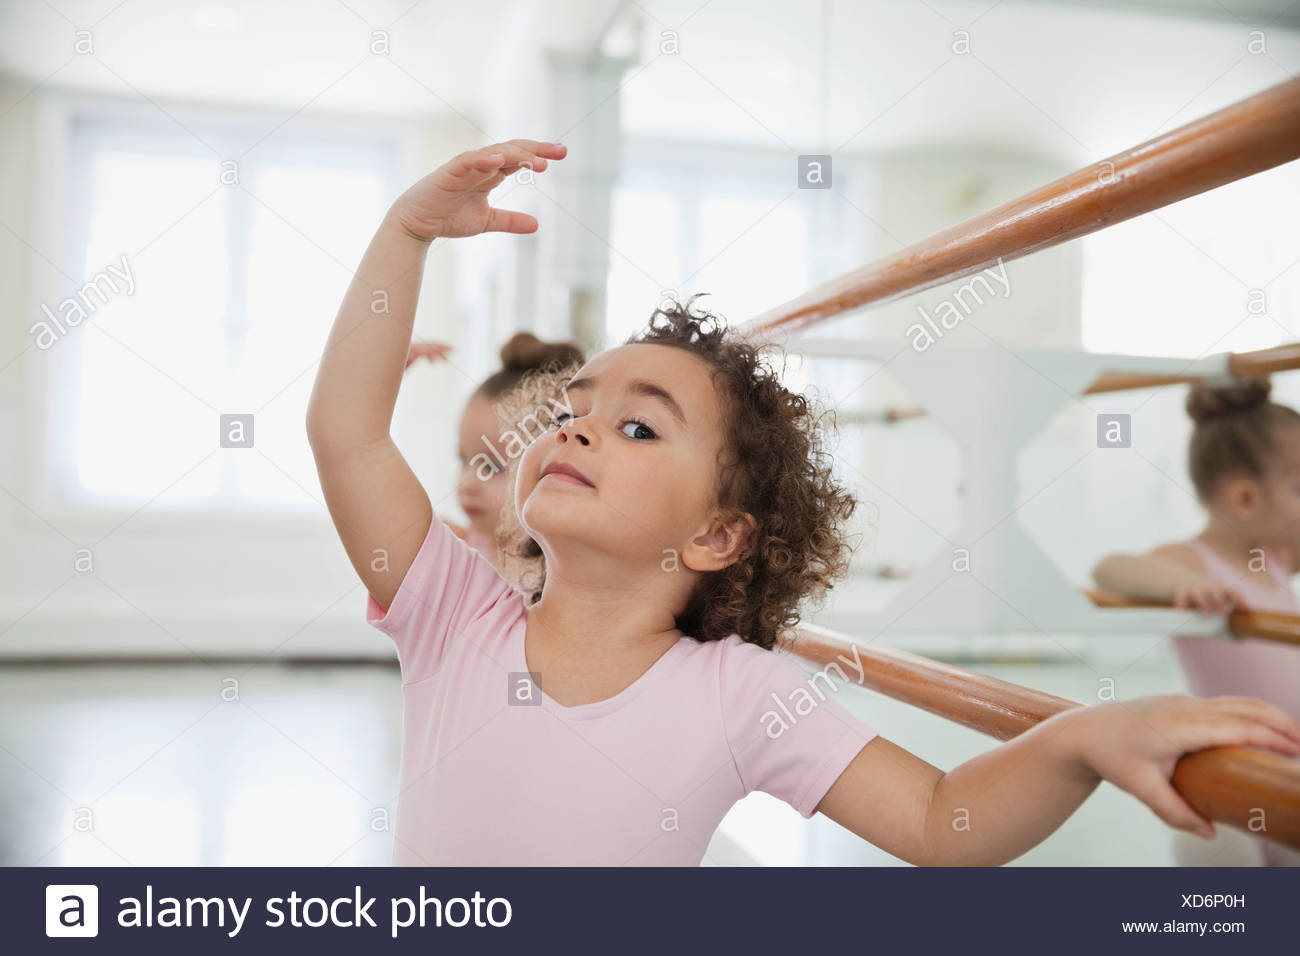 Portrait of girl practicing ballet with friend in ballet studio - Stock Image